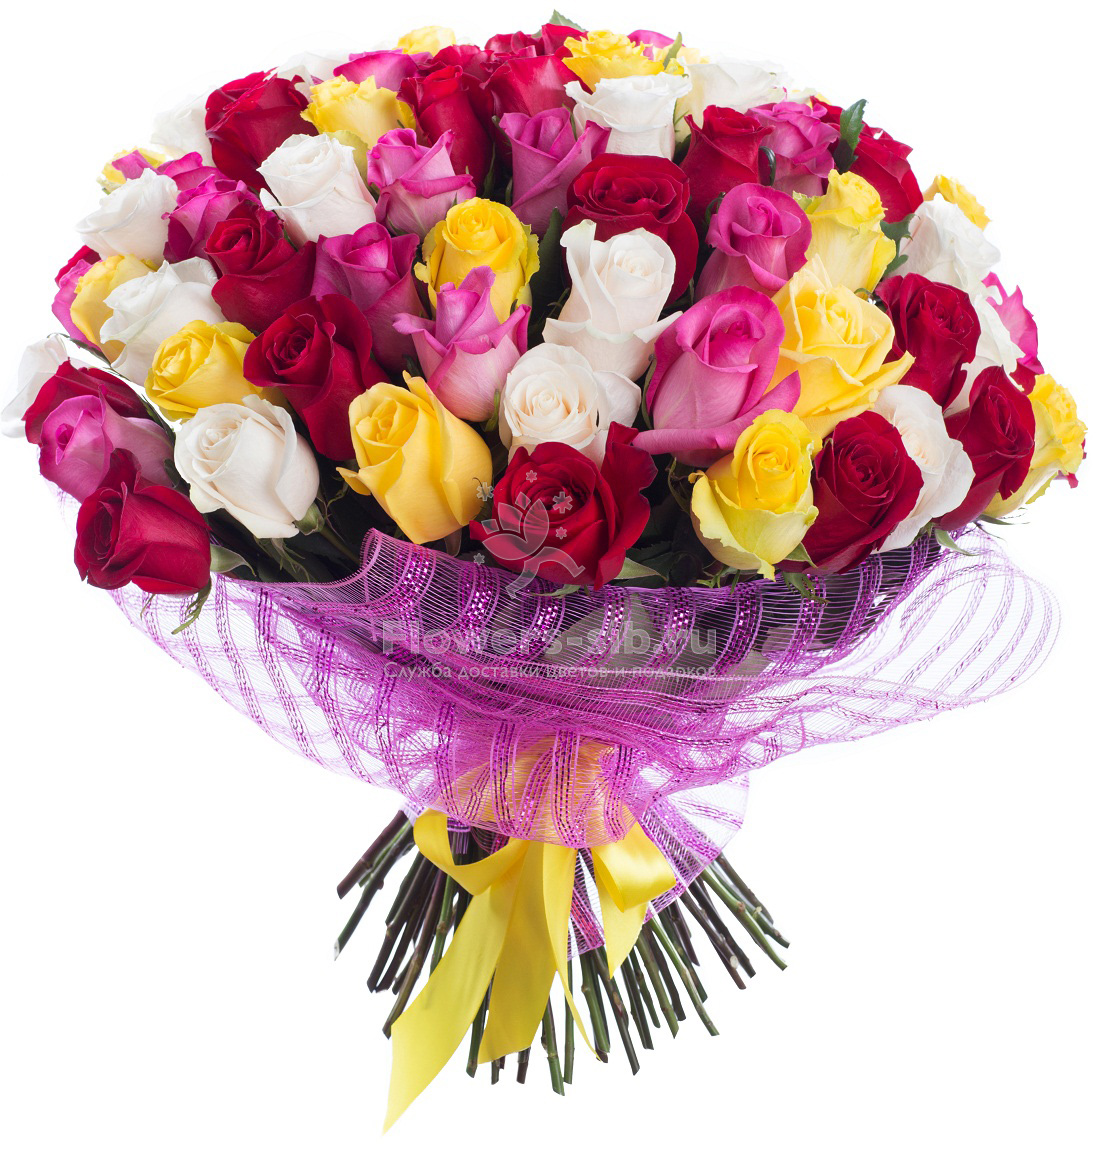 Bouquet Of 75 Roses At The Price 7520 Fast Delivery Of Flowers And